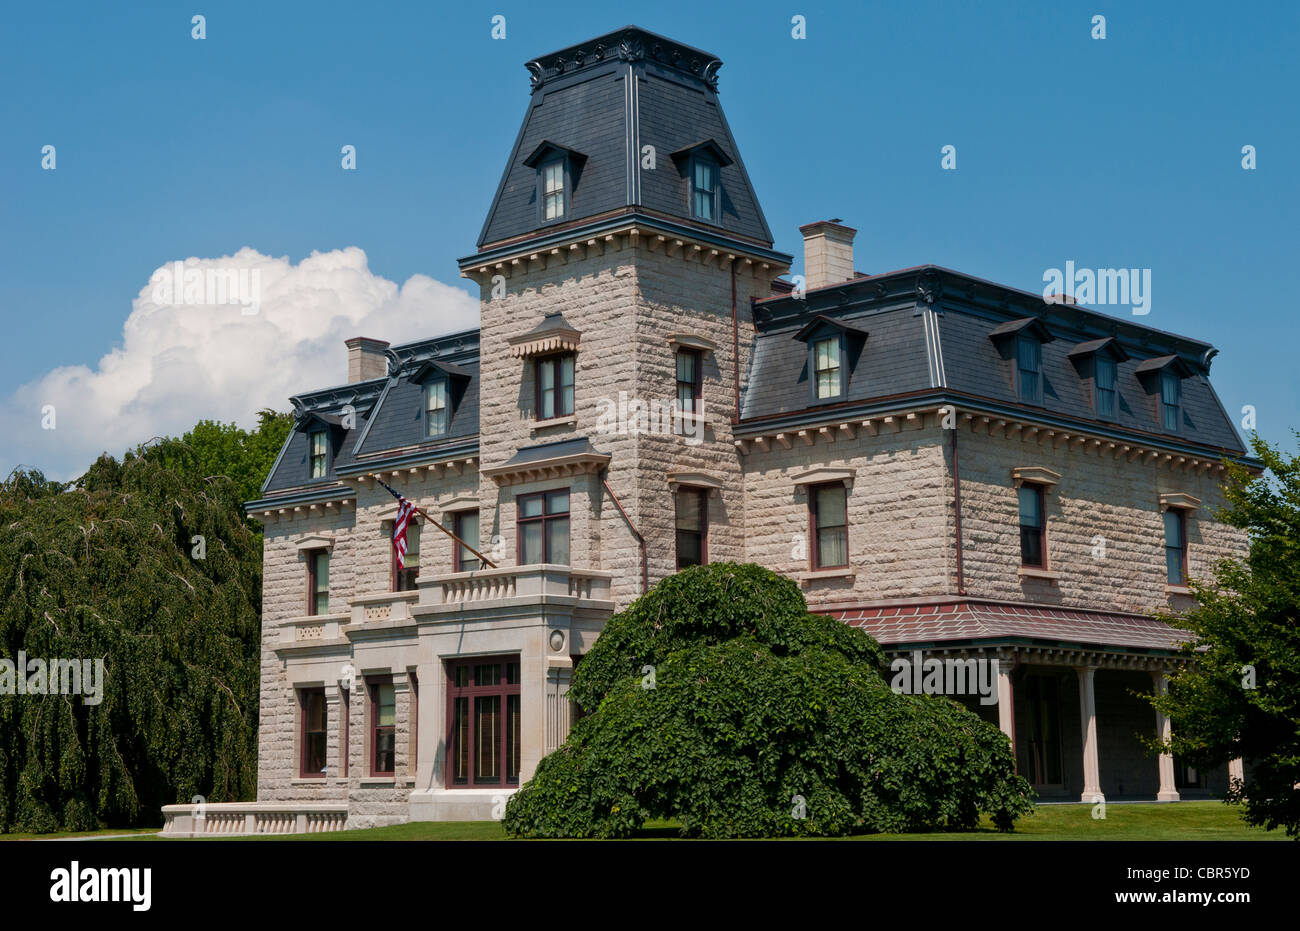 Newport Rhode Island Famous Chateau Sur Mer On The Mansions Drive